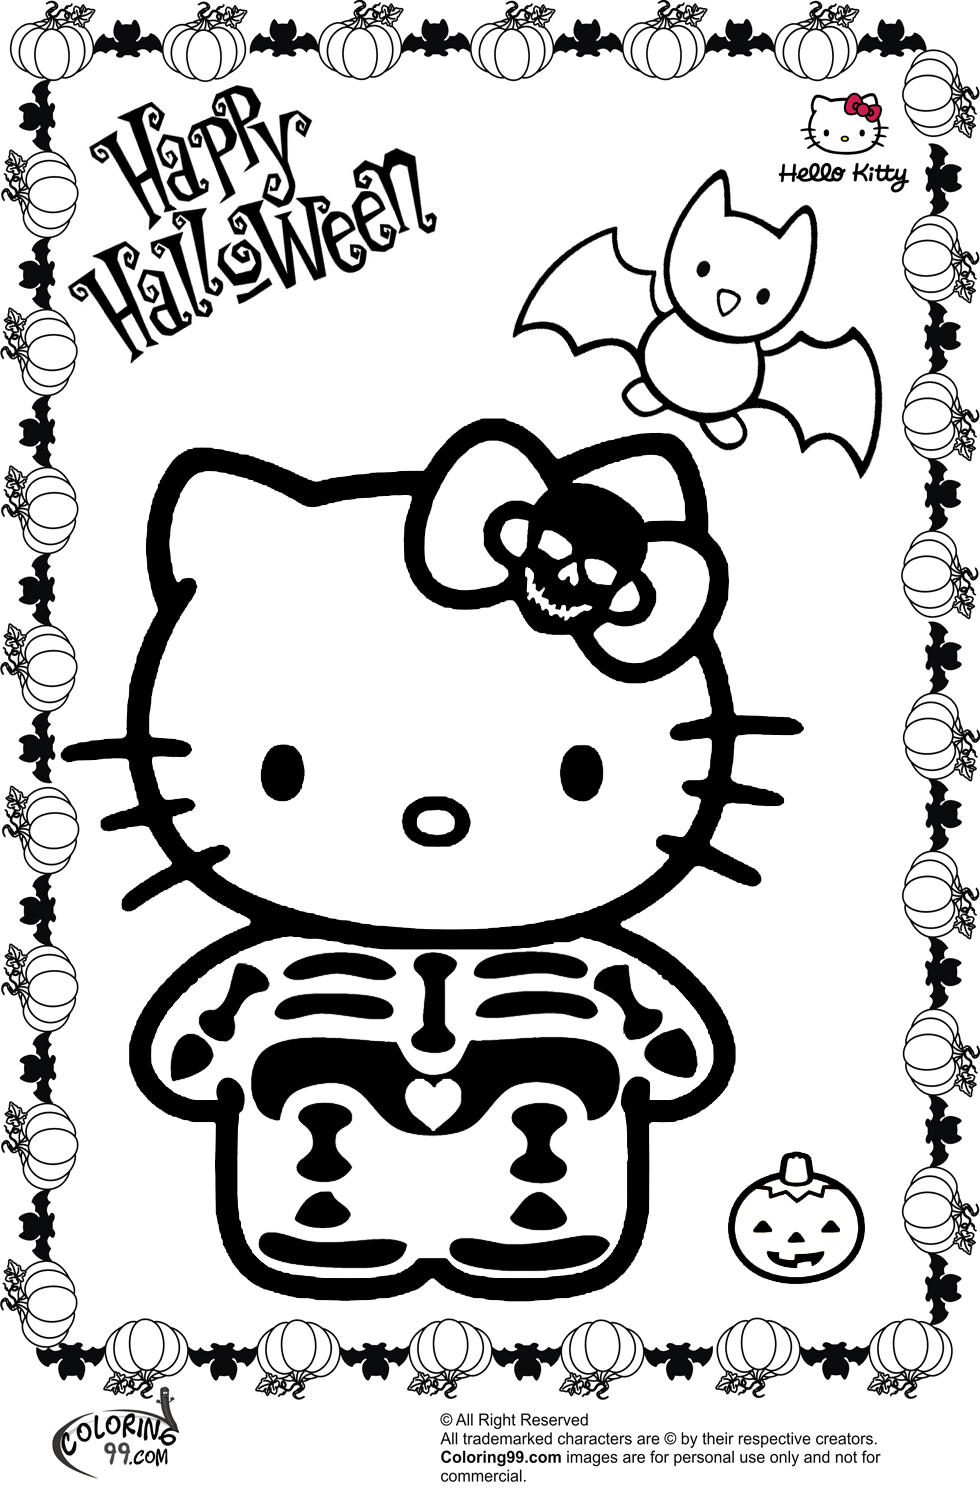 halween coloring pages - photo#22